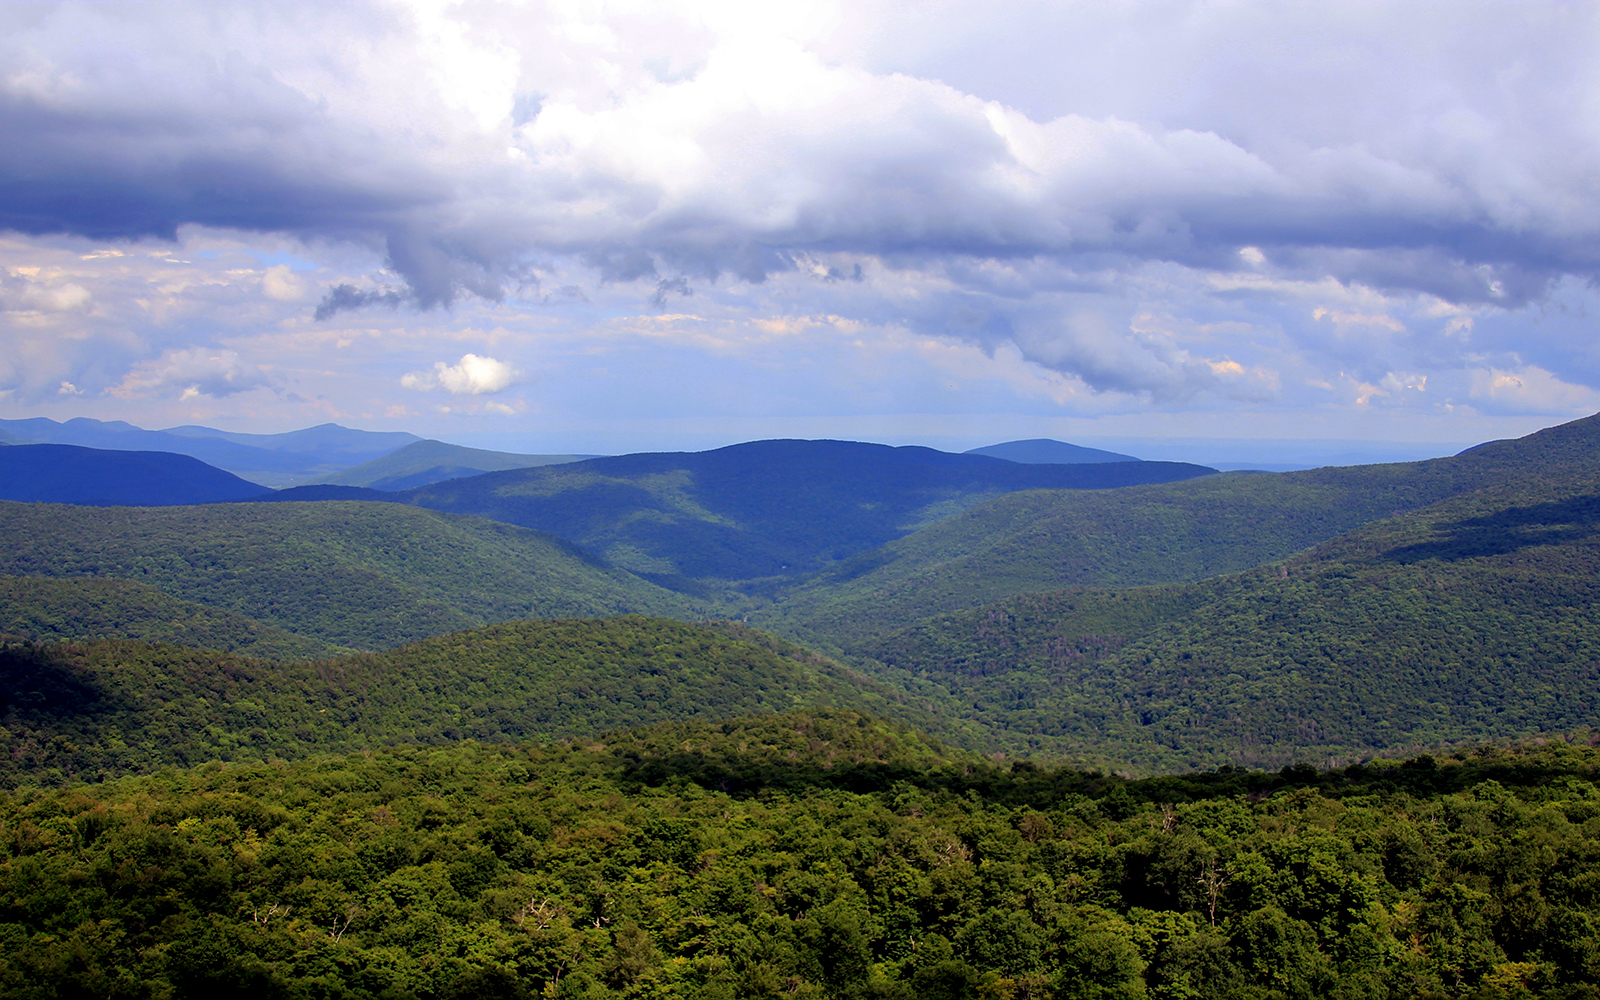 Travel Guide to the Catskills, New York